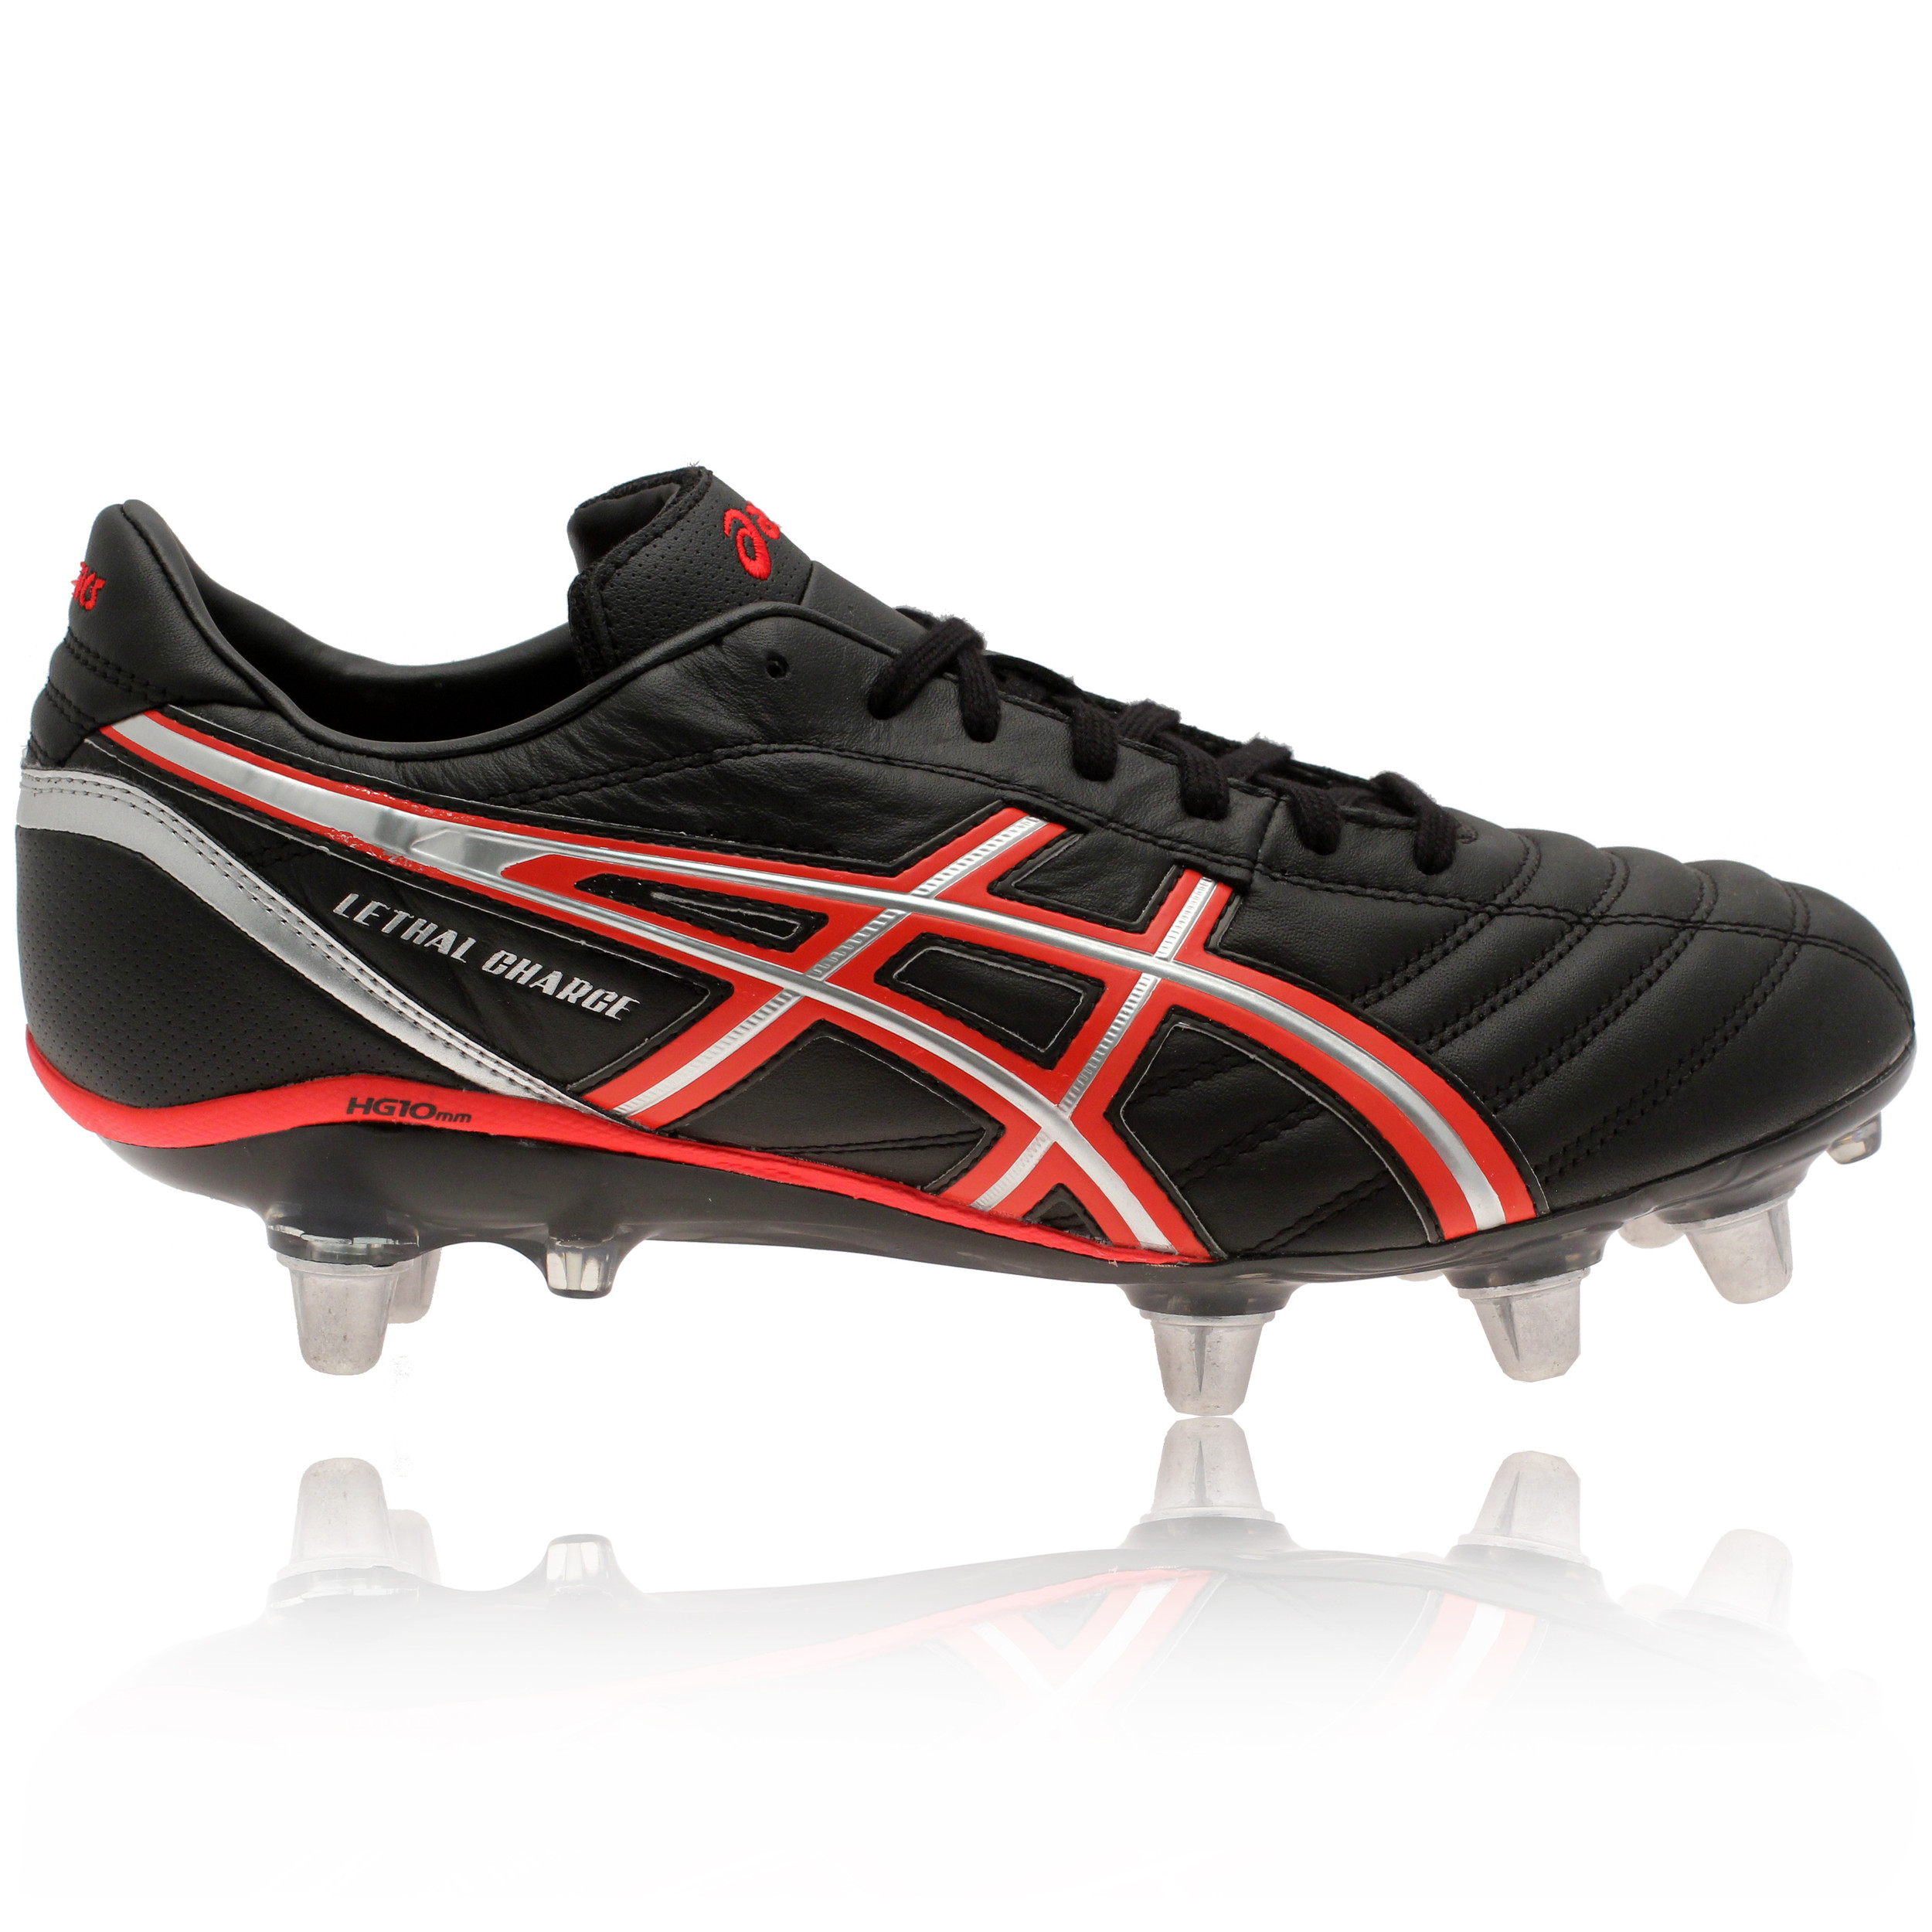 ASICS LETHAL CHARGE Rugby Boots - 20% Off